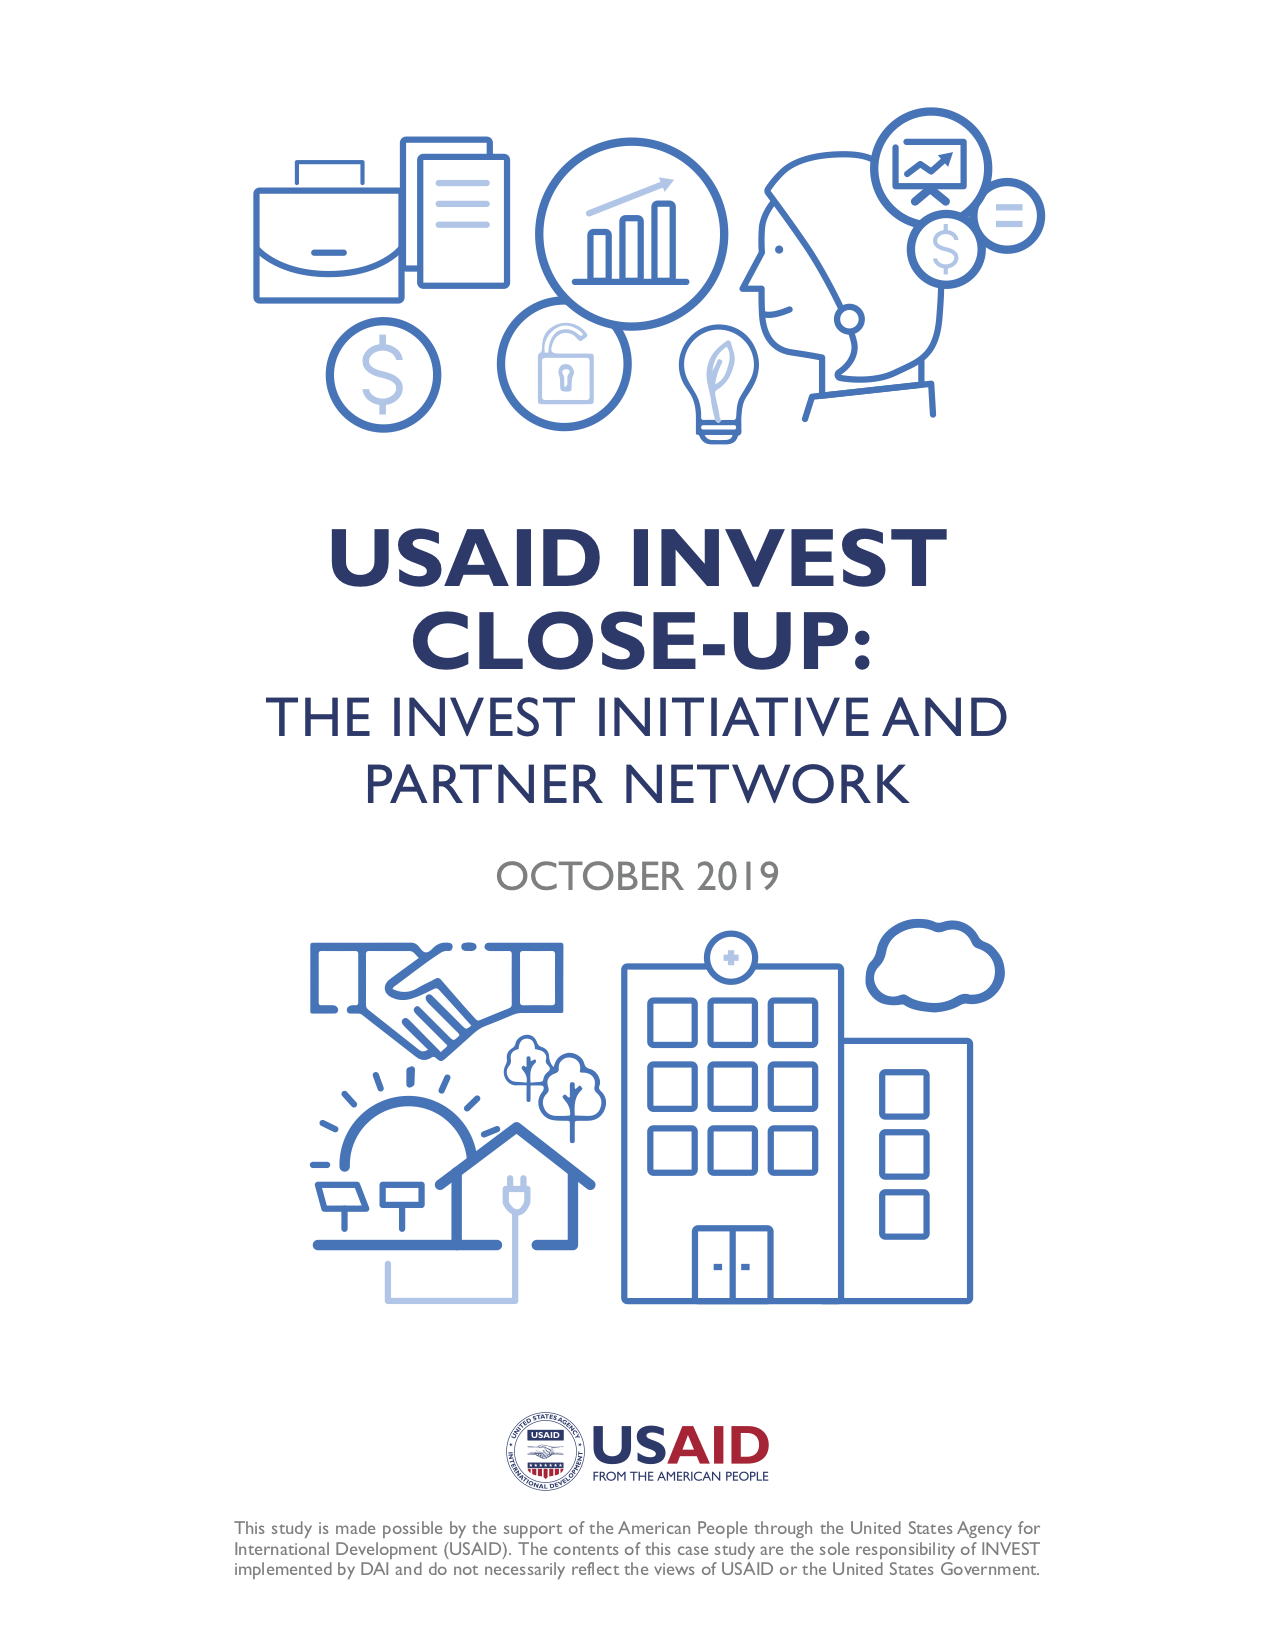 USAID INVEST Close-Up: The Invest Initiative and Partner Network